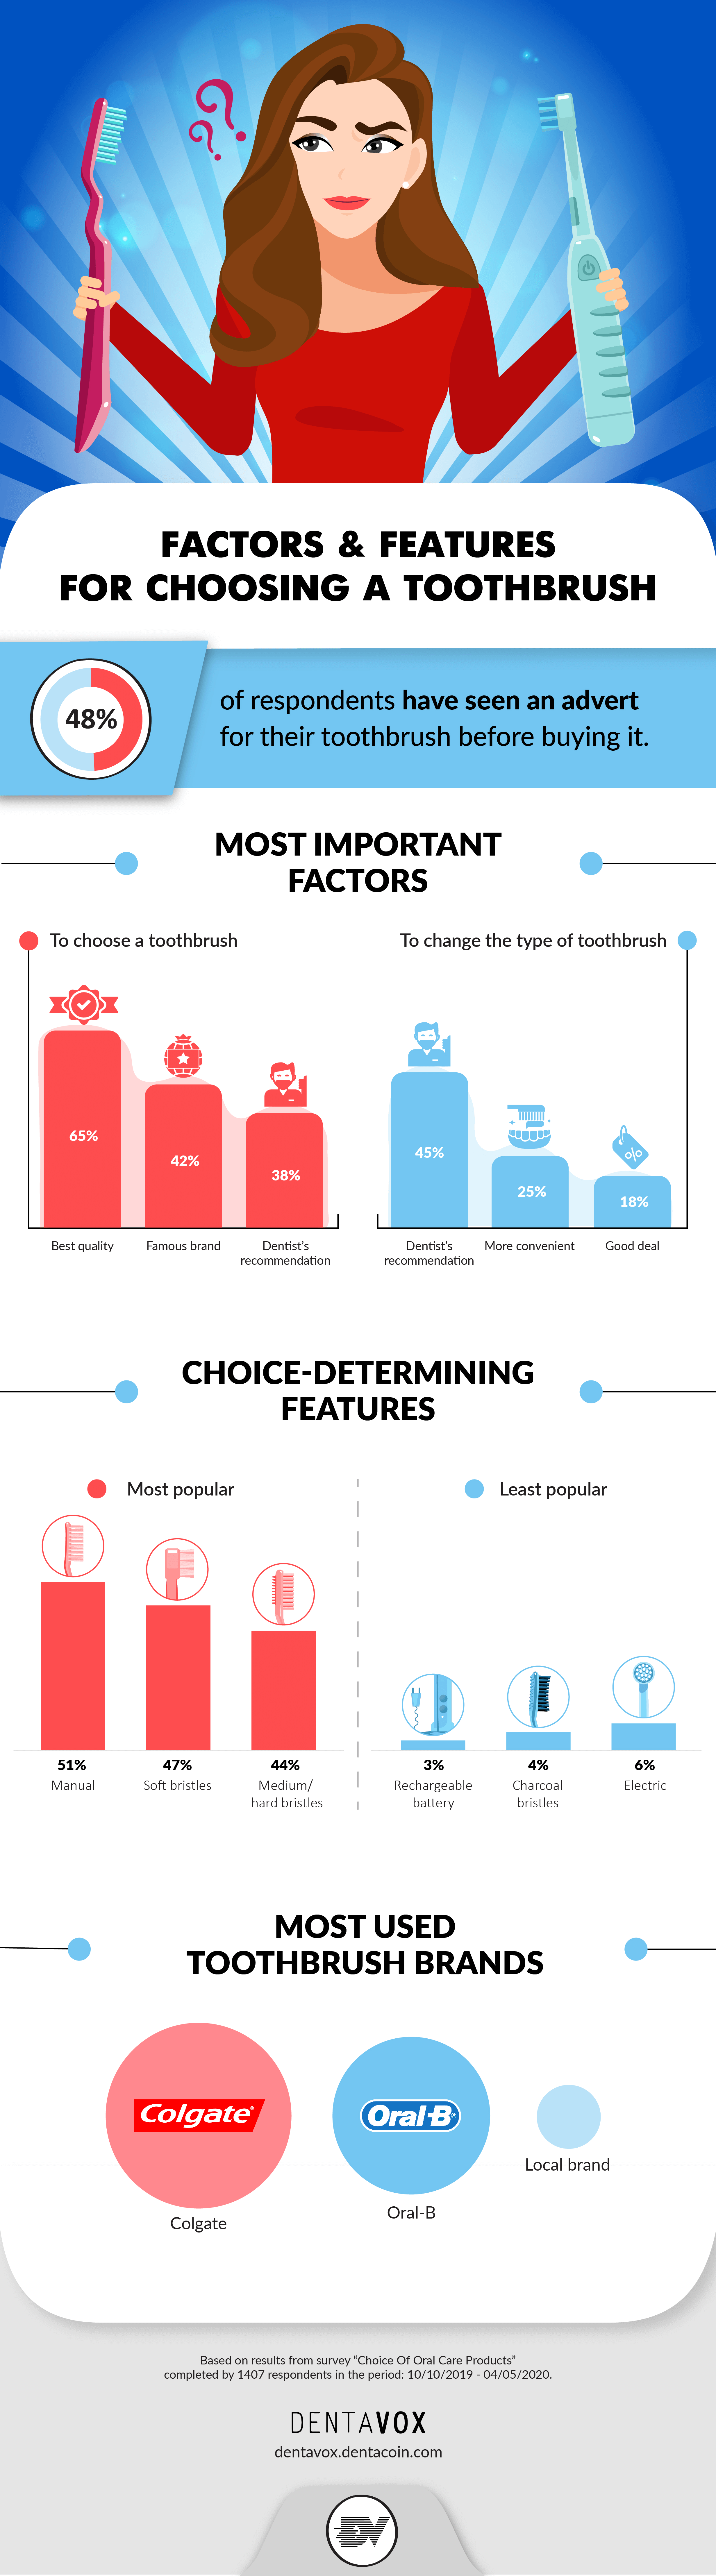 toothbrush choice infographic